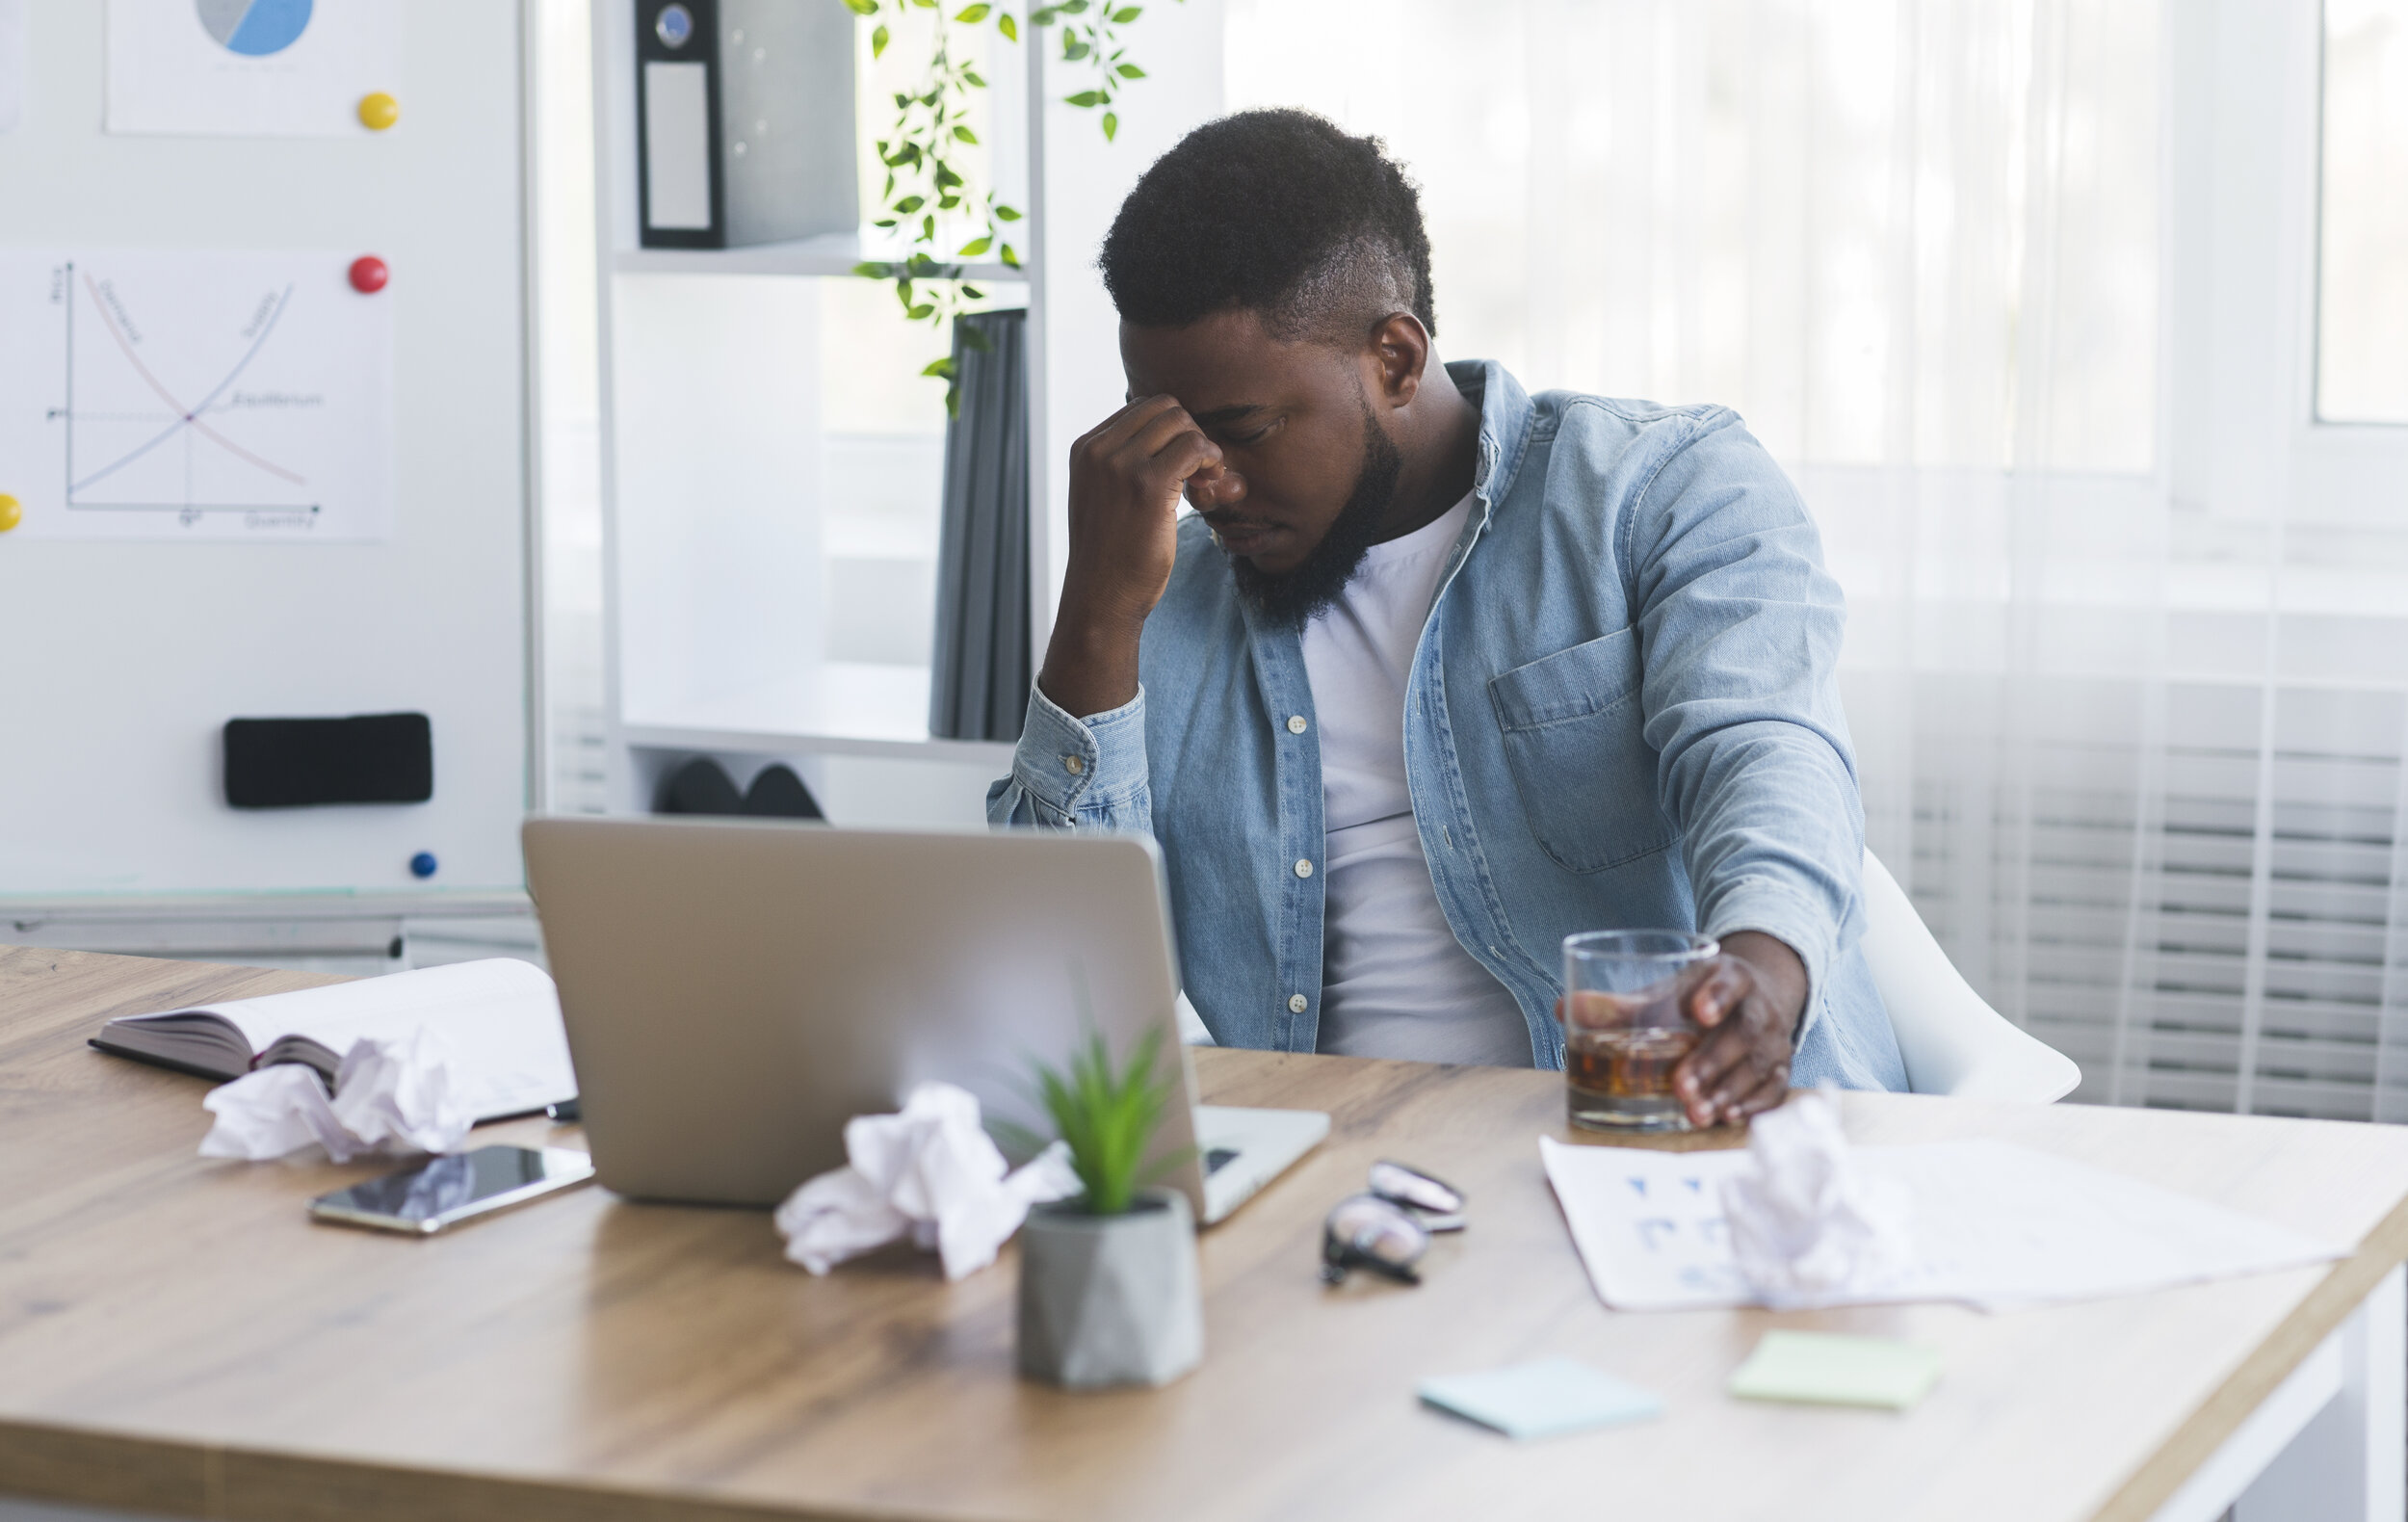 Stressed african american employee drinking alcohol at workplace